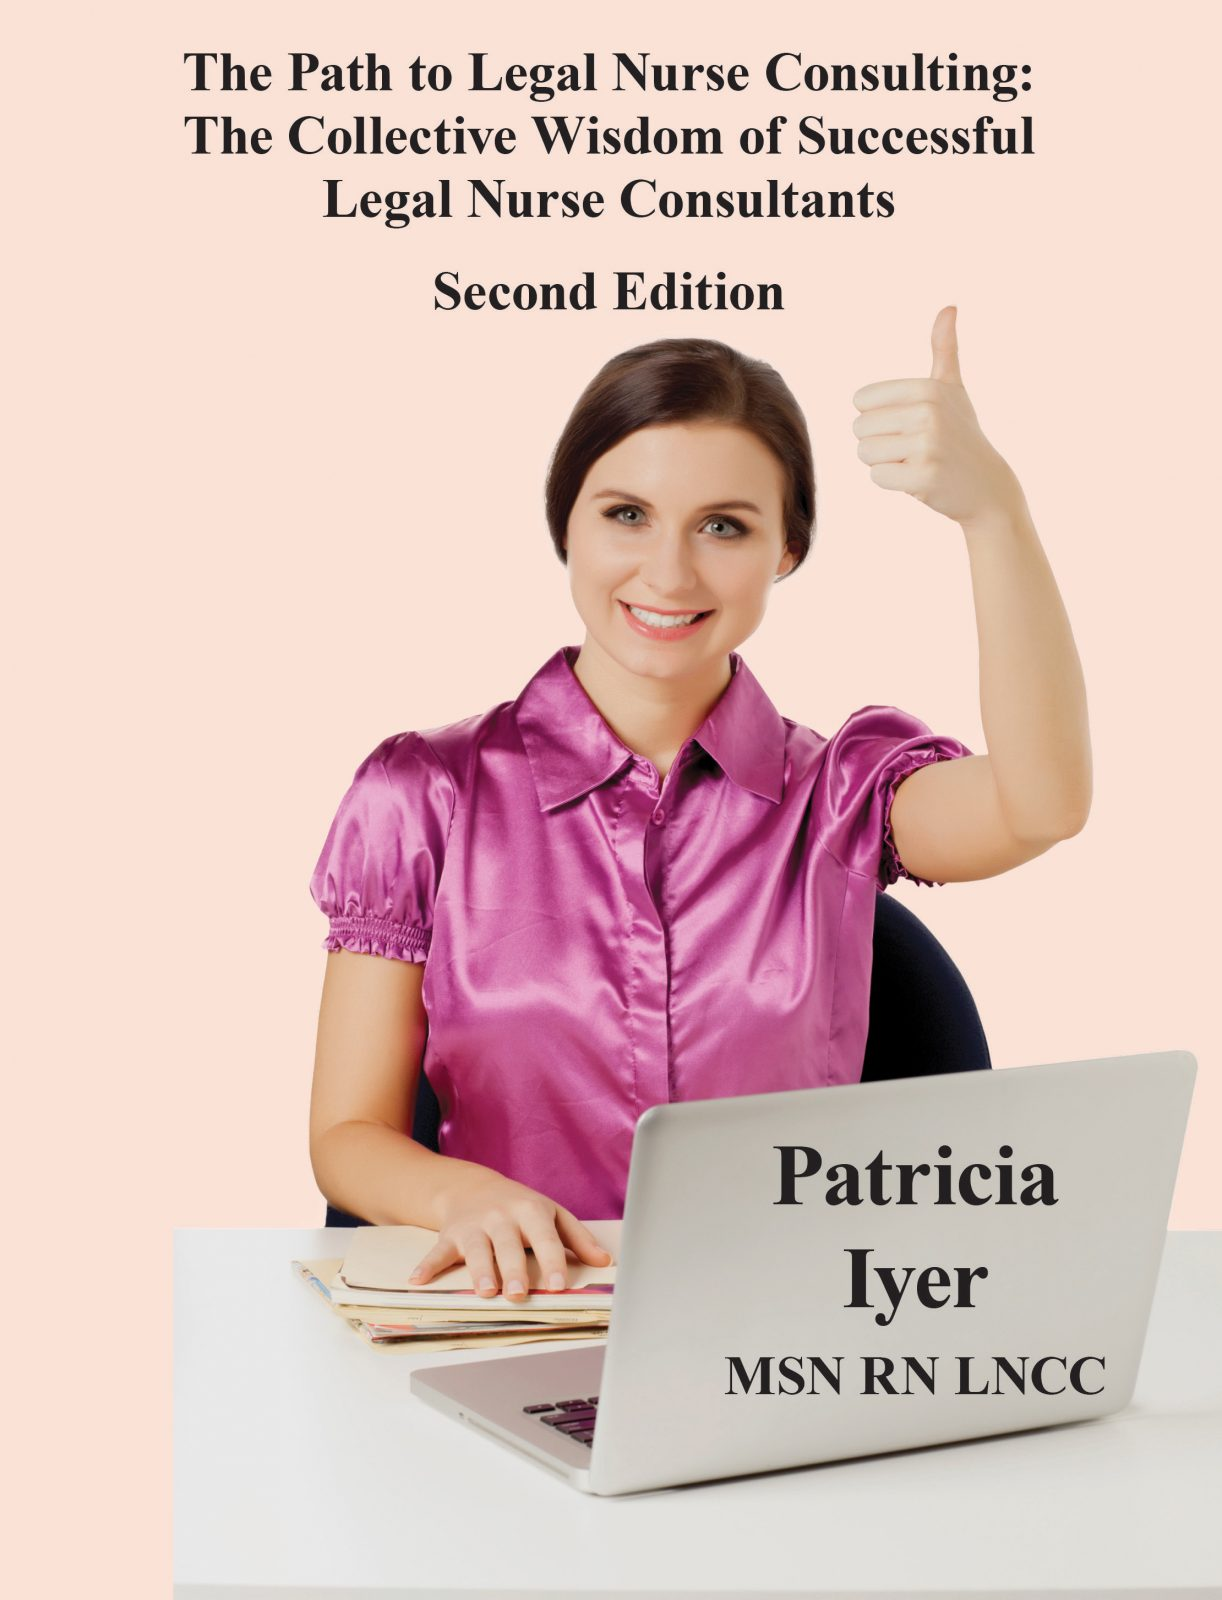 You Know You Are a Legal Nurse Consultant When...